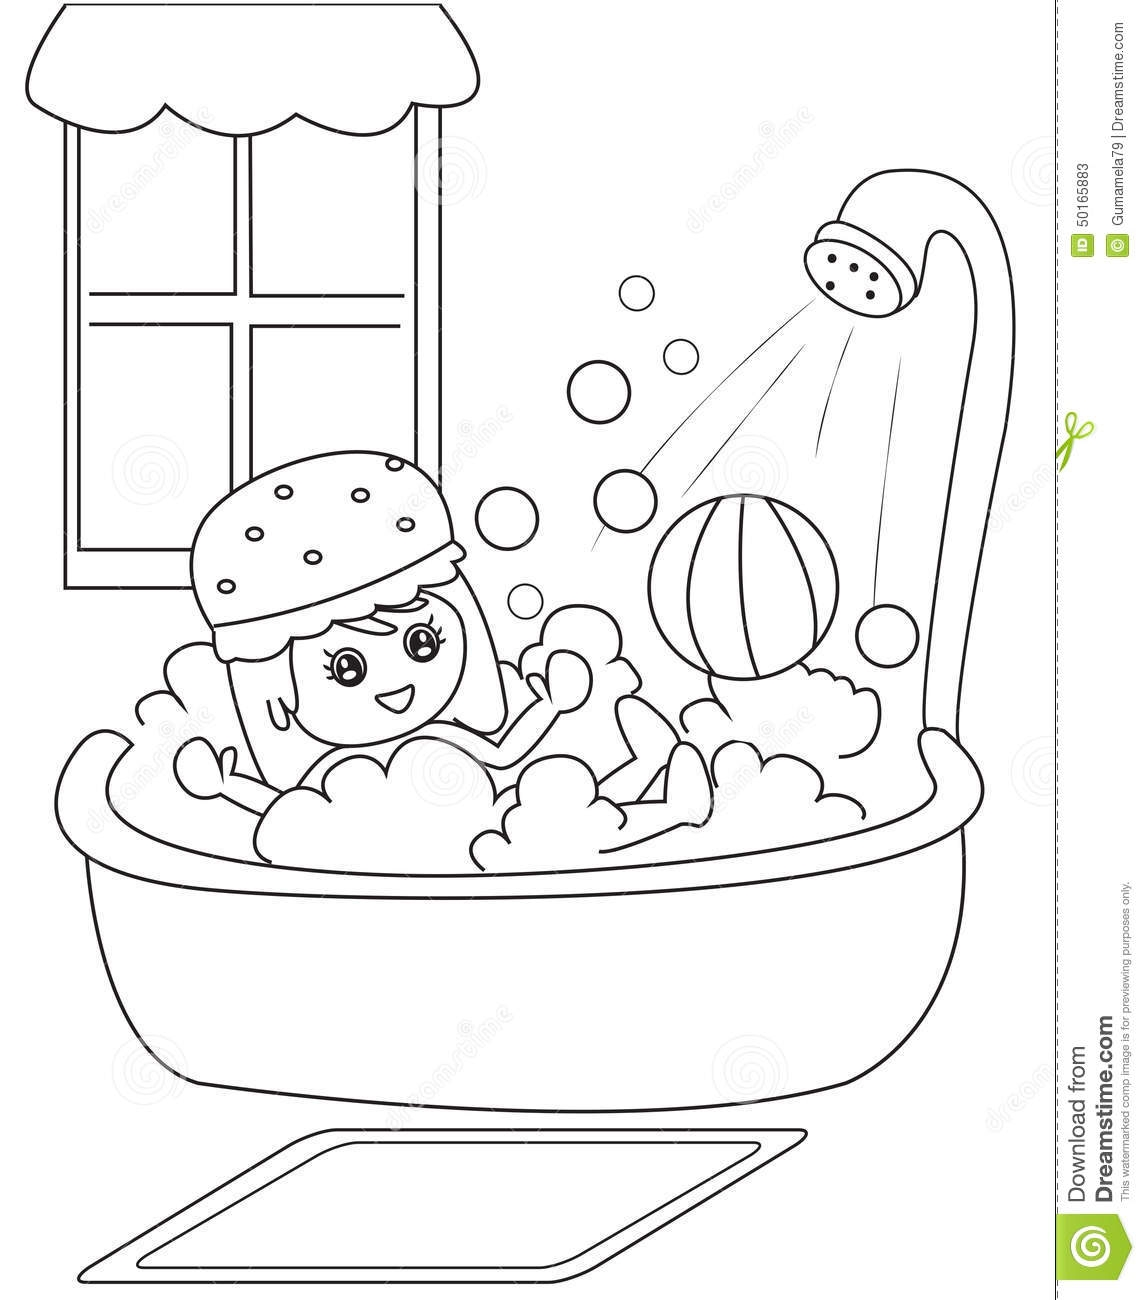 Bathroom clipart outline, Bathroom outline Transparent